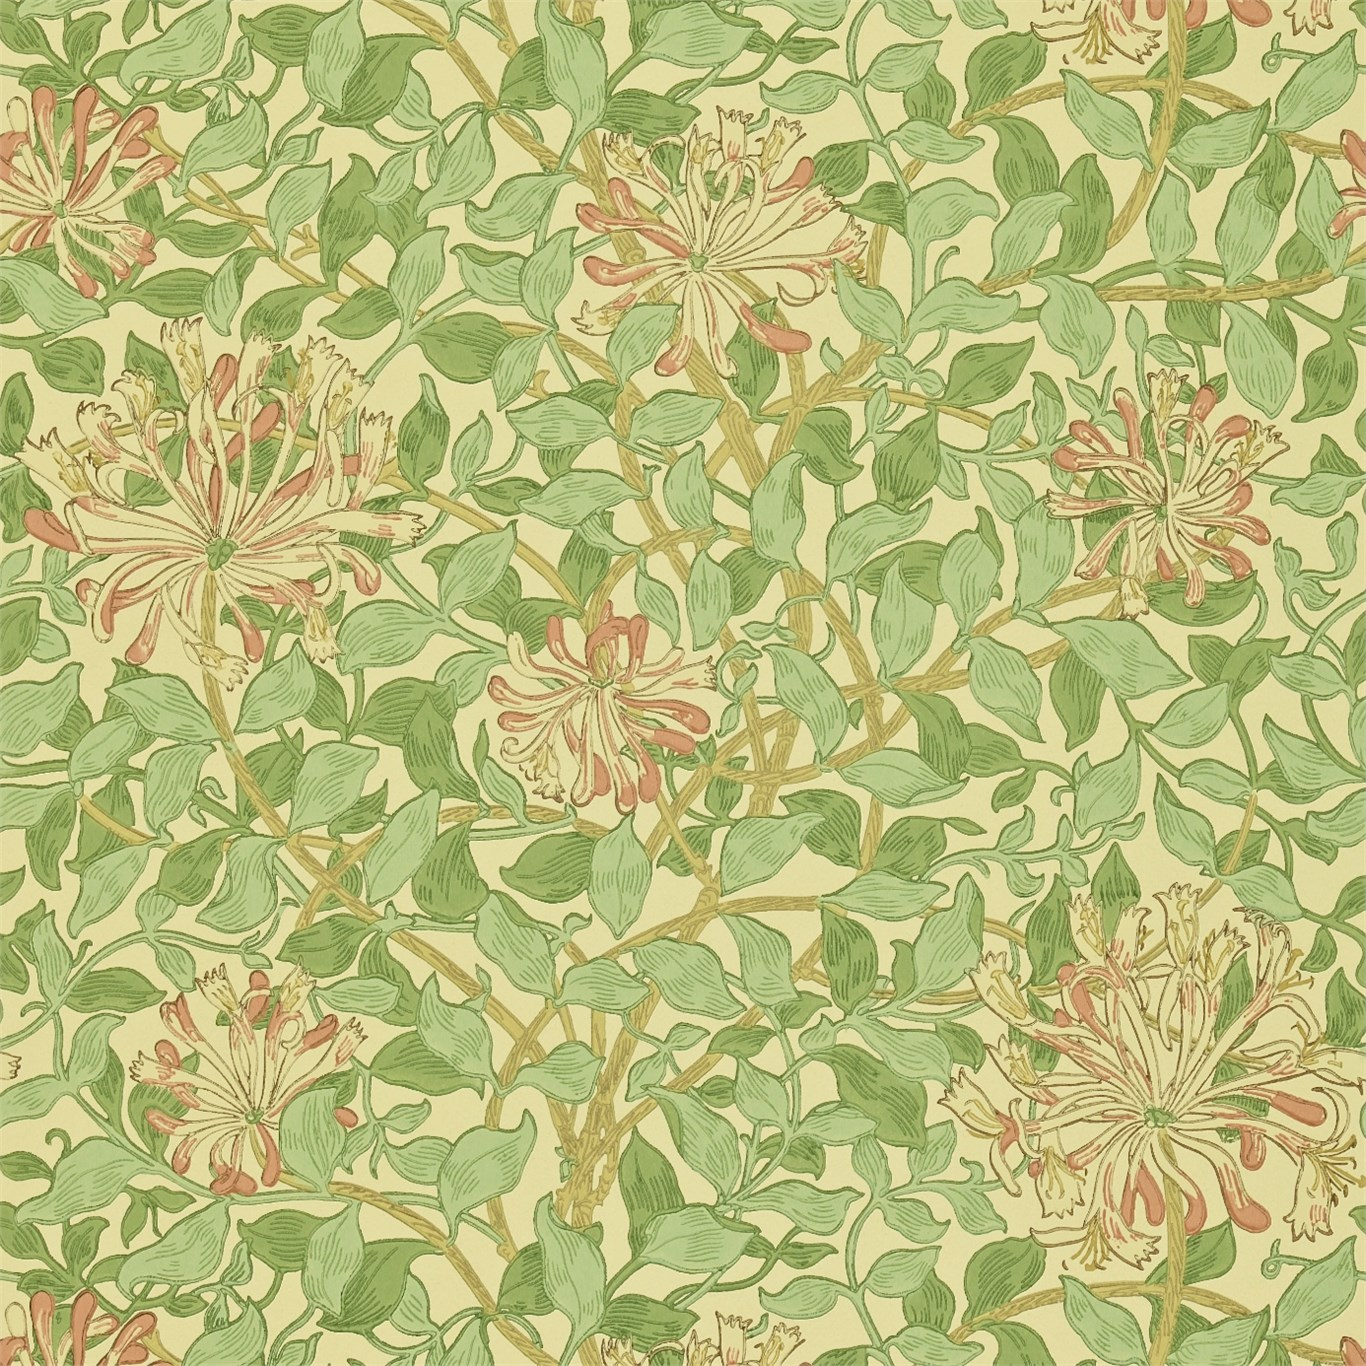 William morris wallpaper honeysuckle for Arts and crafts style prints